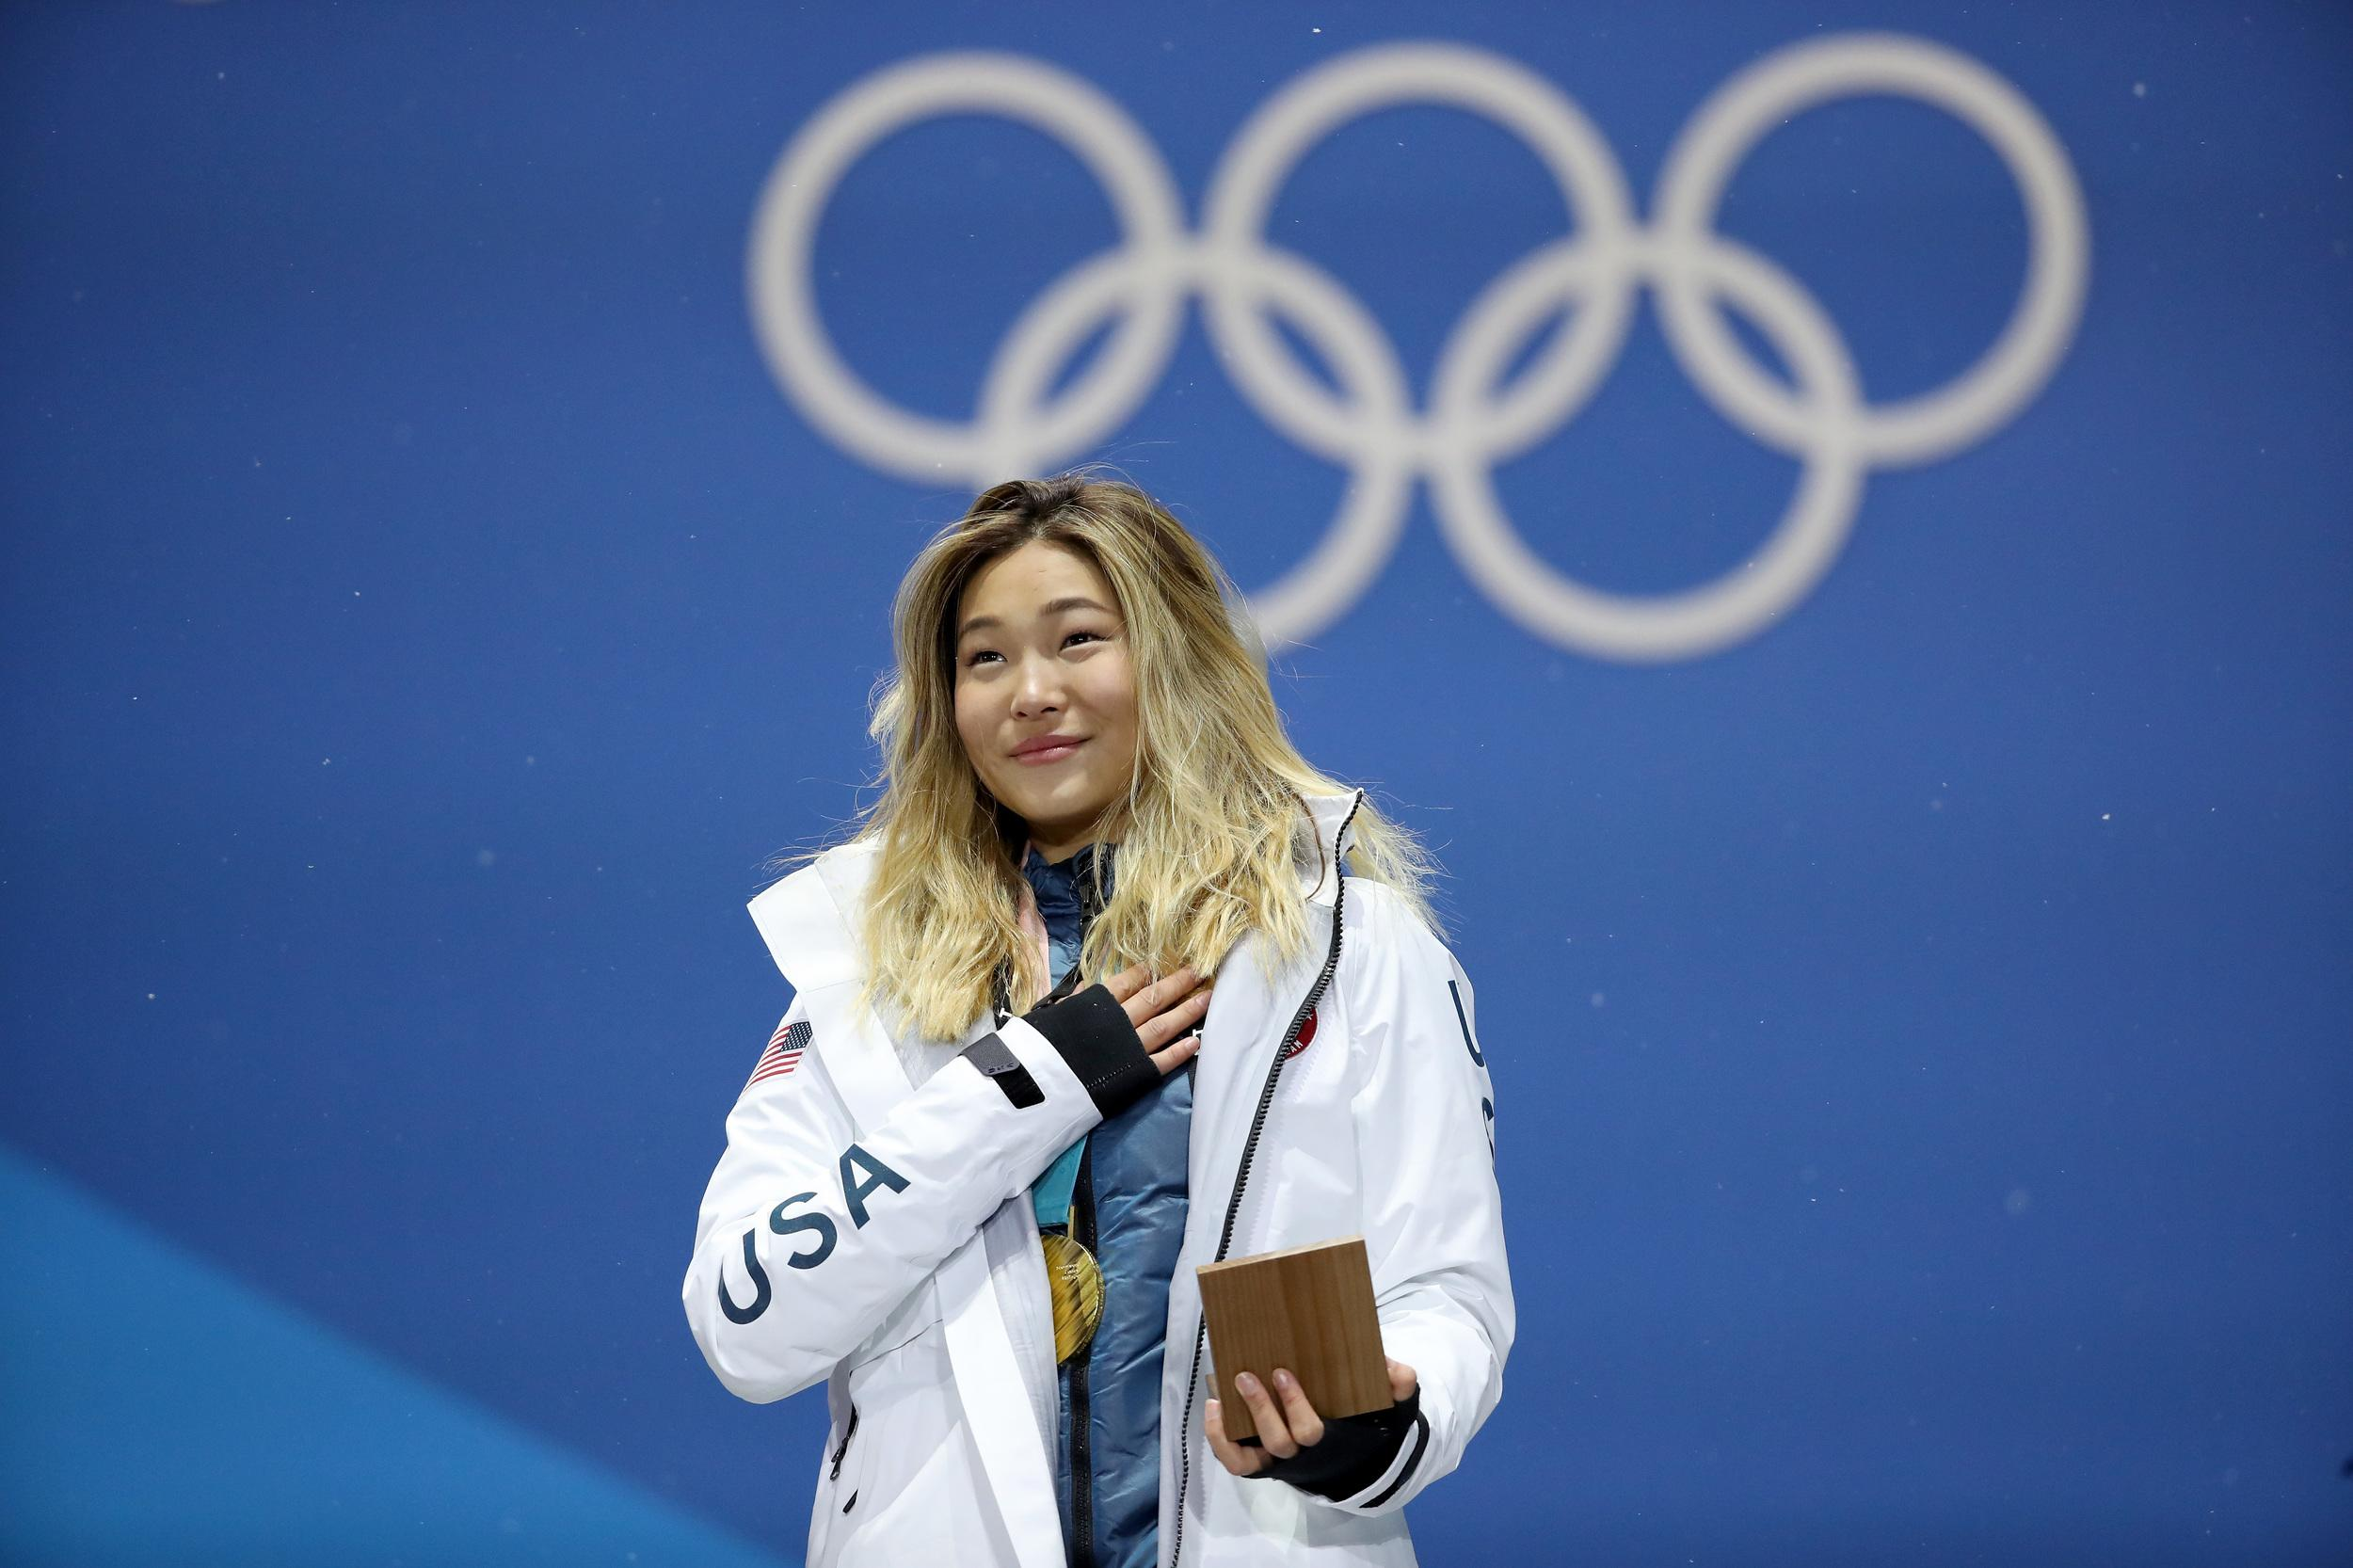 PYEONGCHANG-GUN, SOUTH KOREA - FEBRUARY 13:  Gold medalist Chloe Kim of the United States poses during the medal ceremony for the Snowboard Ladies' Halfpipe Final on day four of the PyeongChang 2018 Winter Olympic Games at Medal Plaza on February 13, 2018 in Pyeongchang-gun, South Korea.  (Photo by Sean M. Haffey/Getty Images)